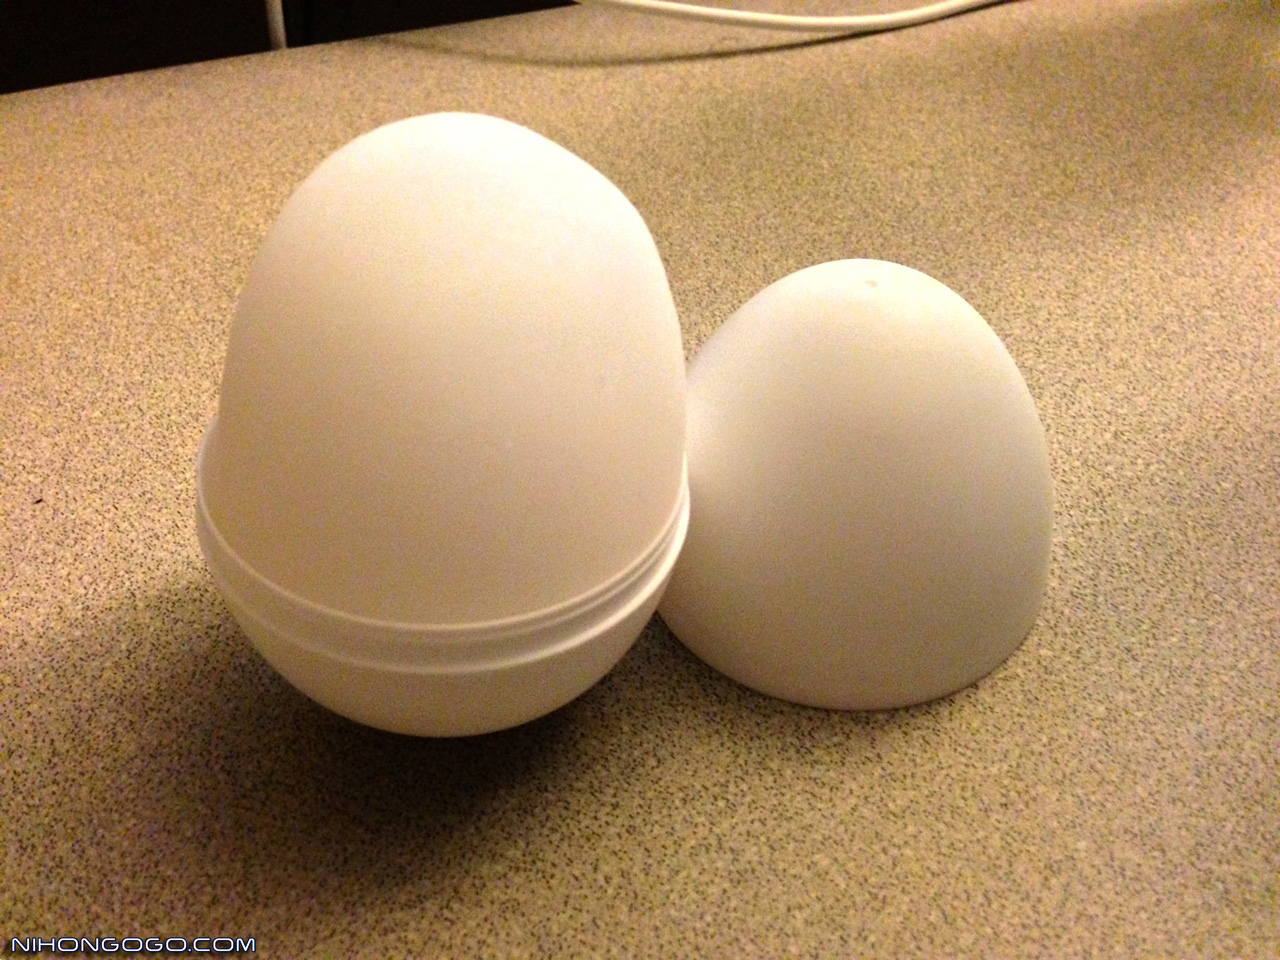 Tenga Egg Being Used